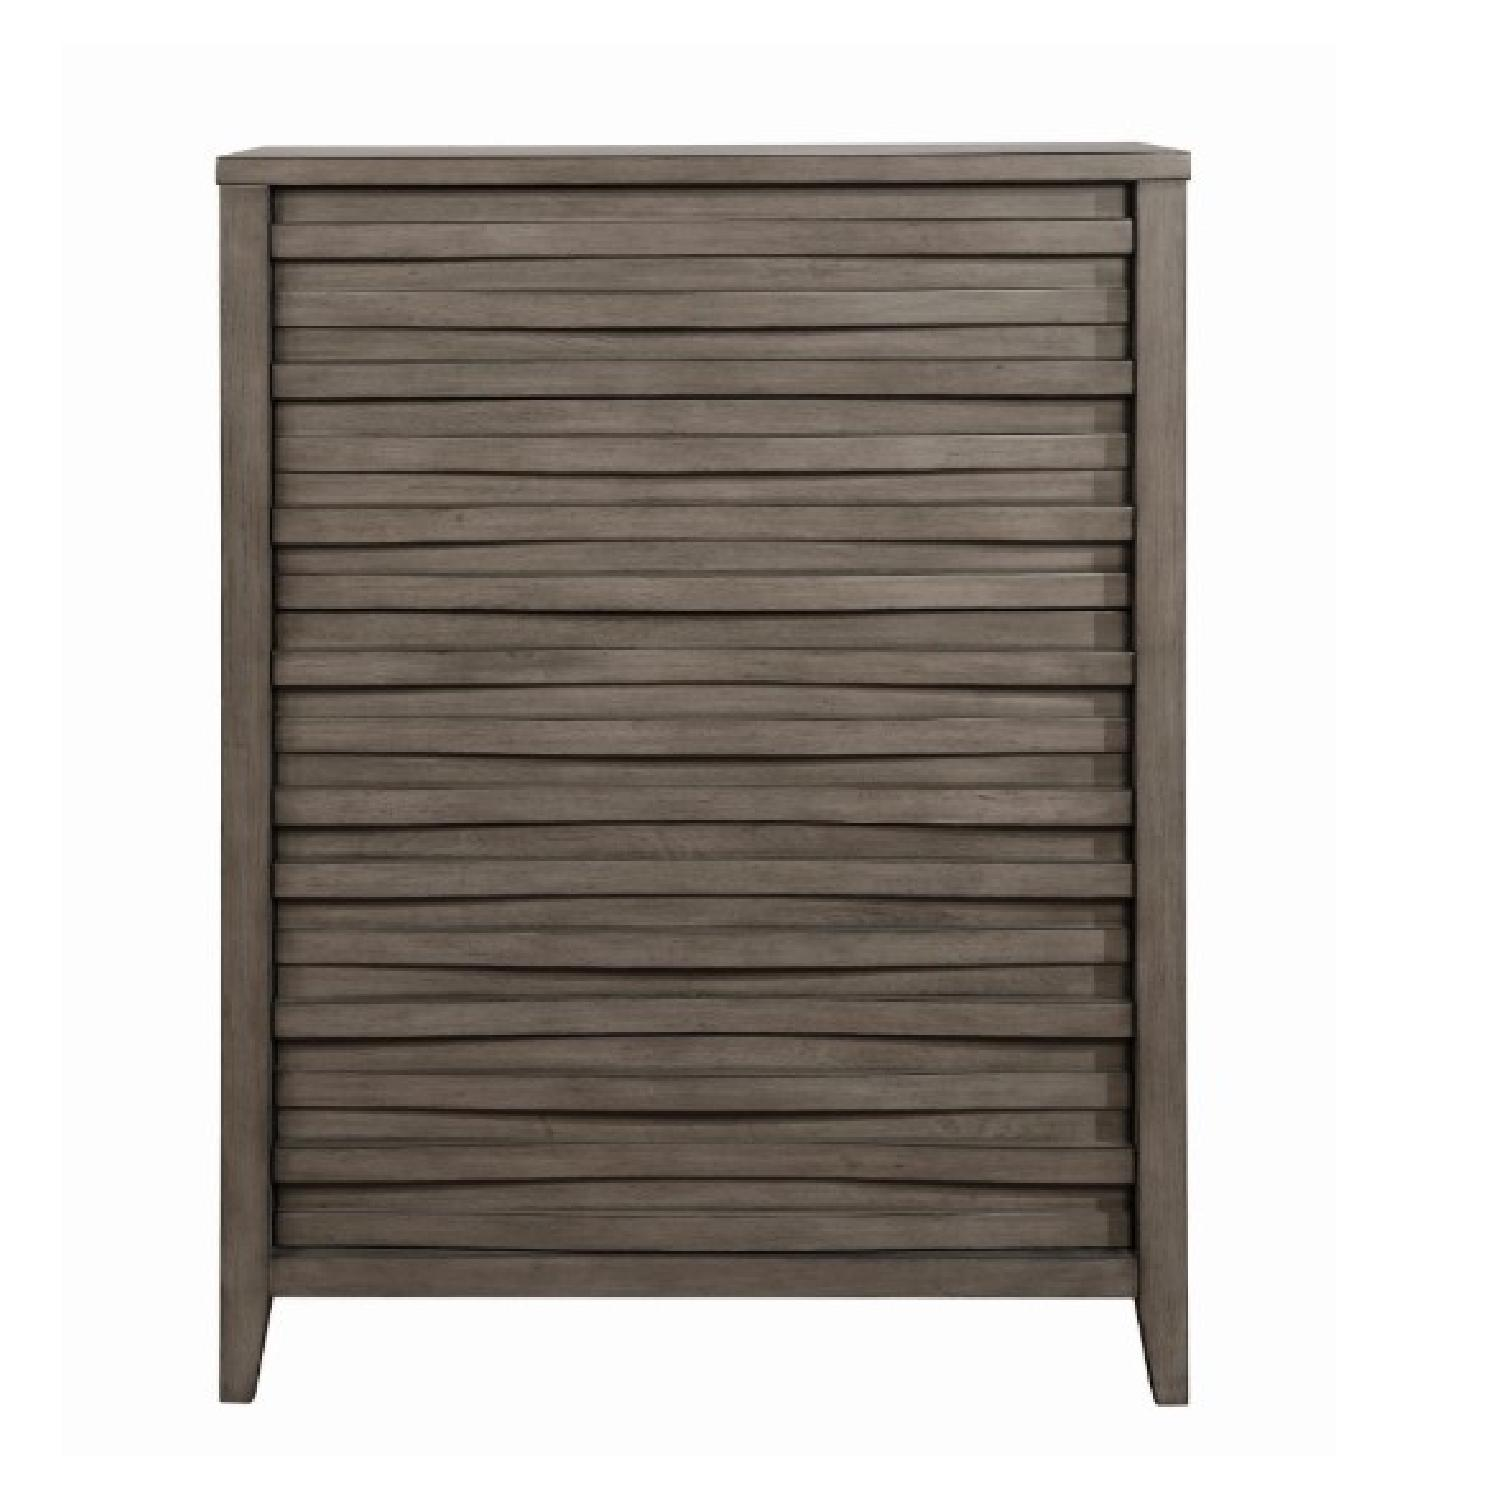 Modern Chest in Dark Taupe w/ Wave-Like Drawer Face - image-3